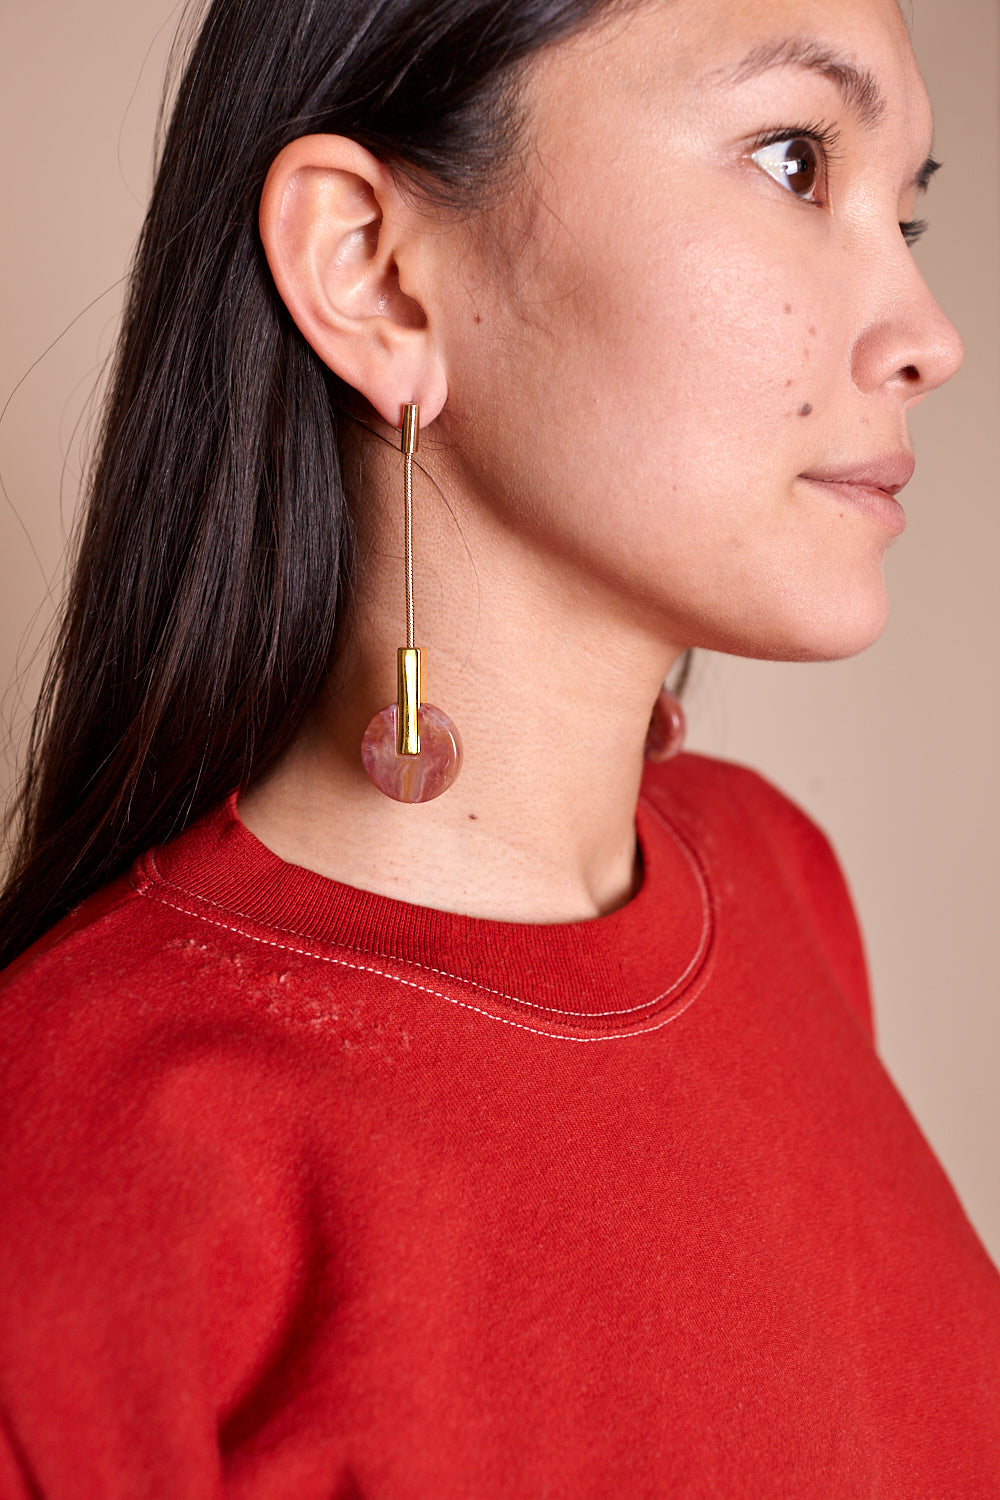 Nix Earrings in Pink Gold